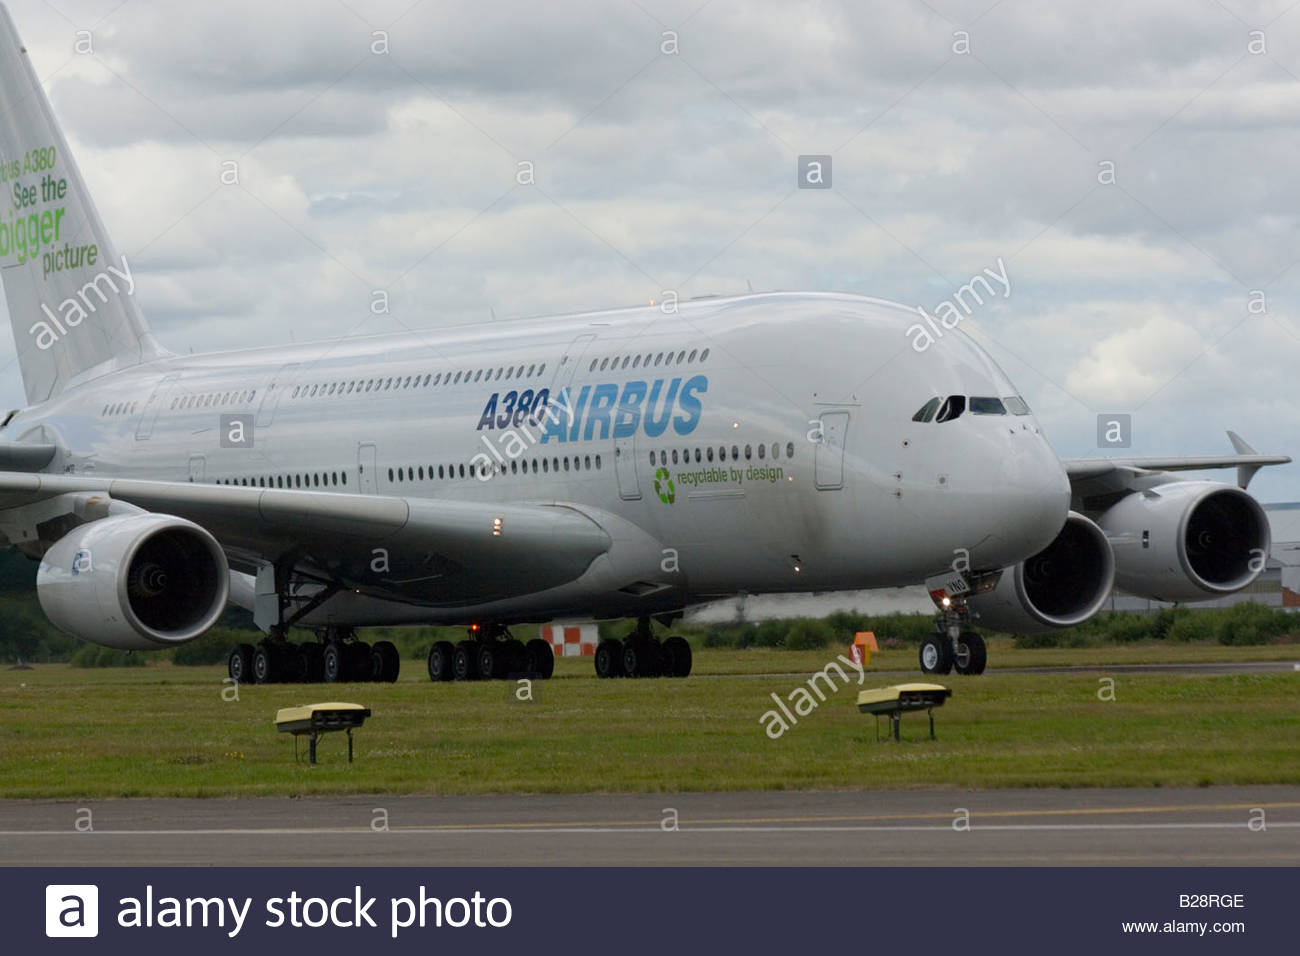 Airbus A380 Farnborough 2008  Commercial Airliner - Stock Image